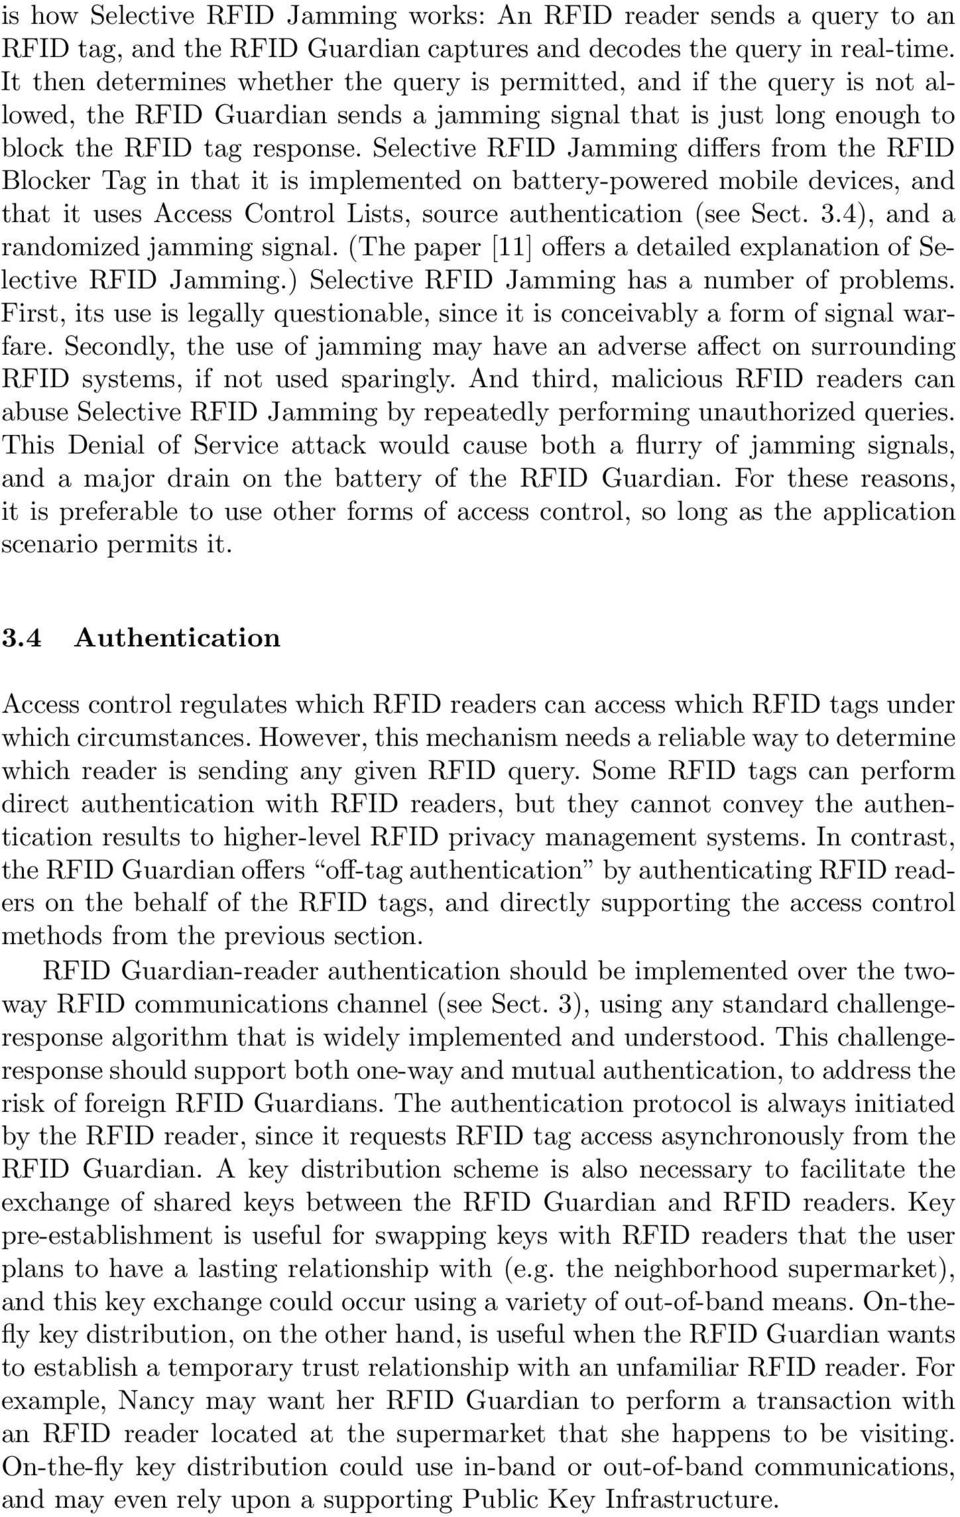 Selective RFID Jamming differs from the RFID Blocker Tag in that it is implemented on battery-powered mobile devices, and that it uses Access Control Lists, source authentication (see Sect. 3.